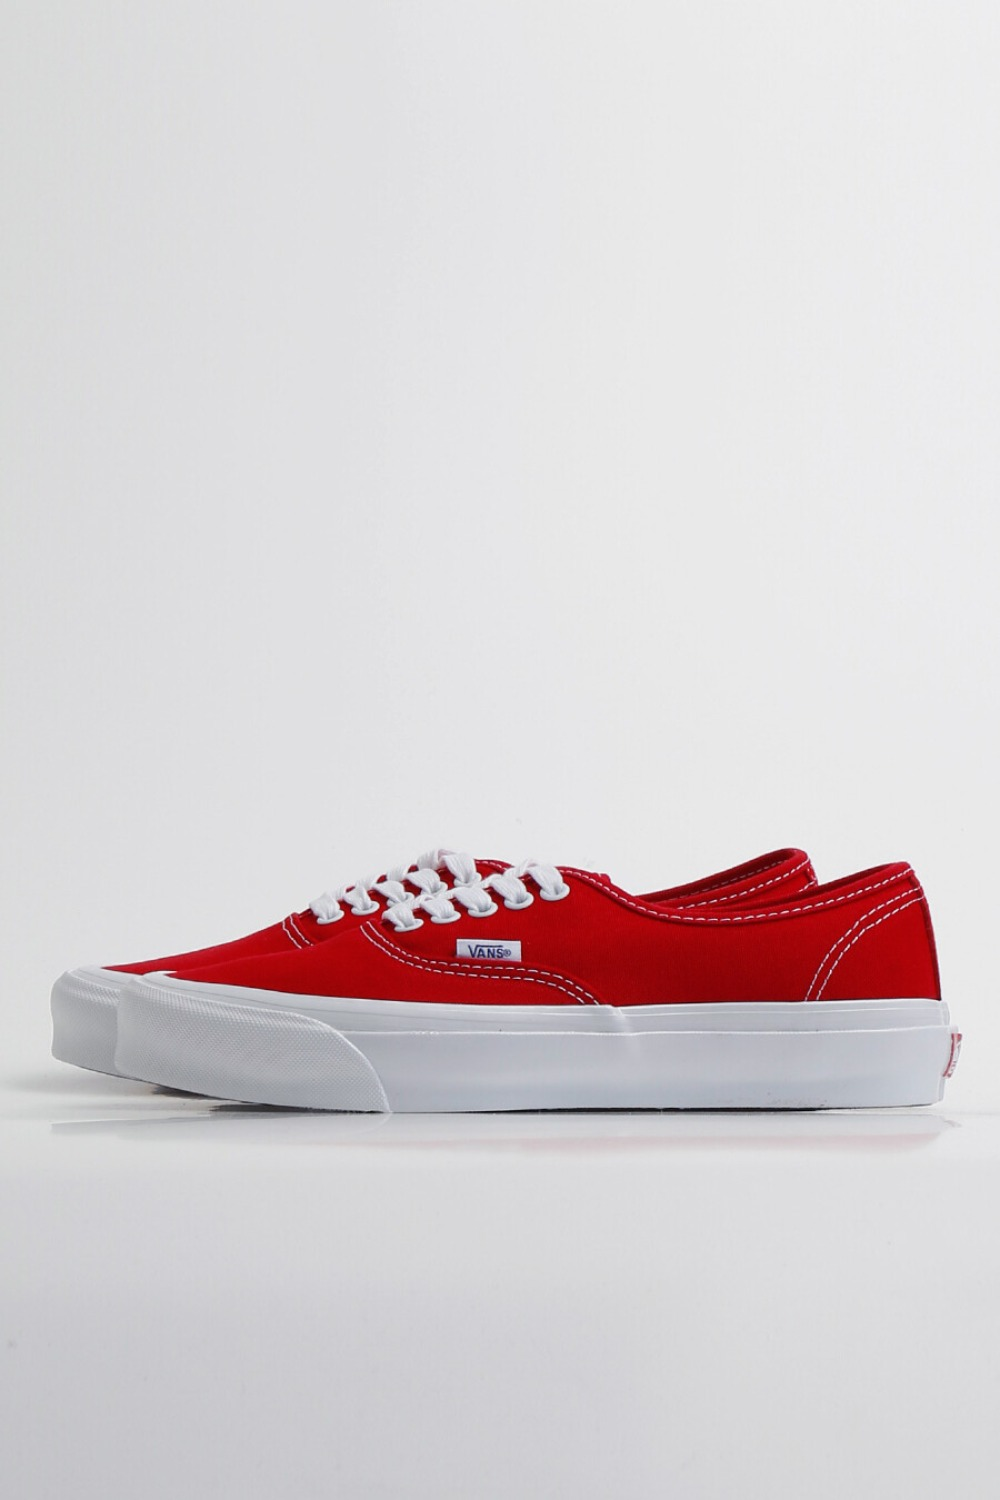 OG AUTHENTIC LX(CANVAS)RED/TRUE WHITE